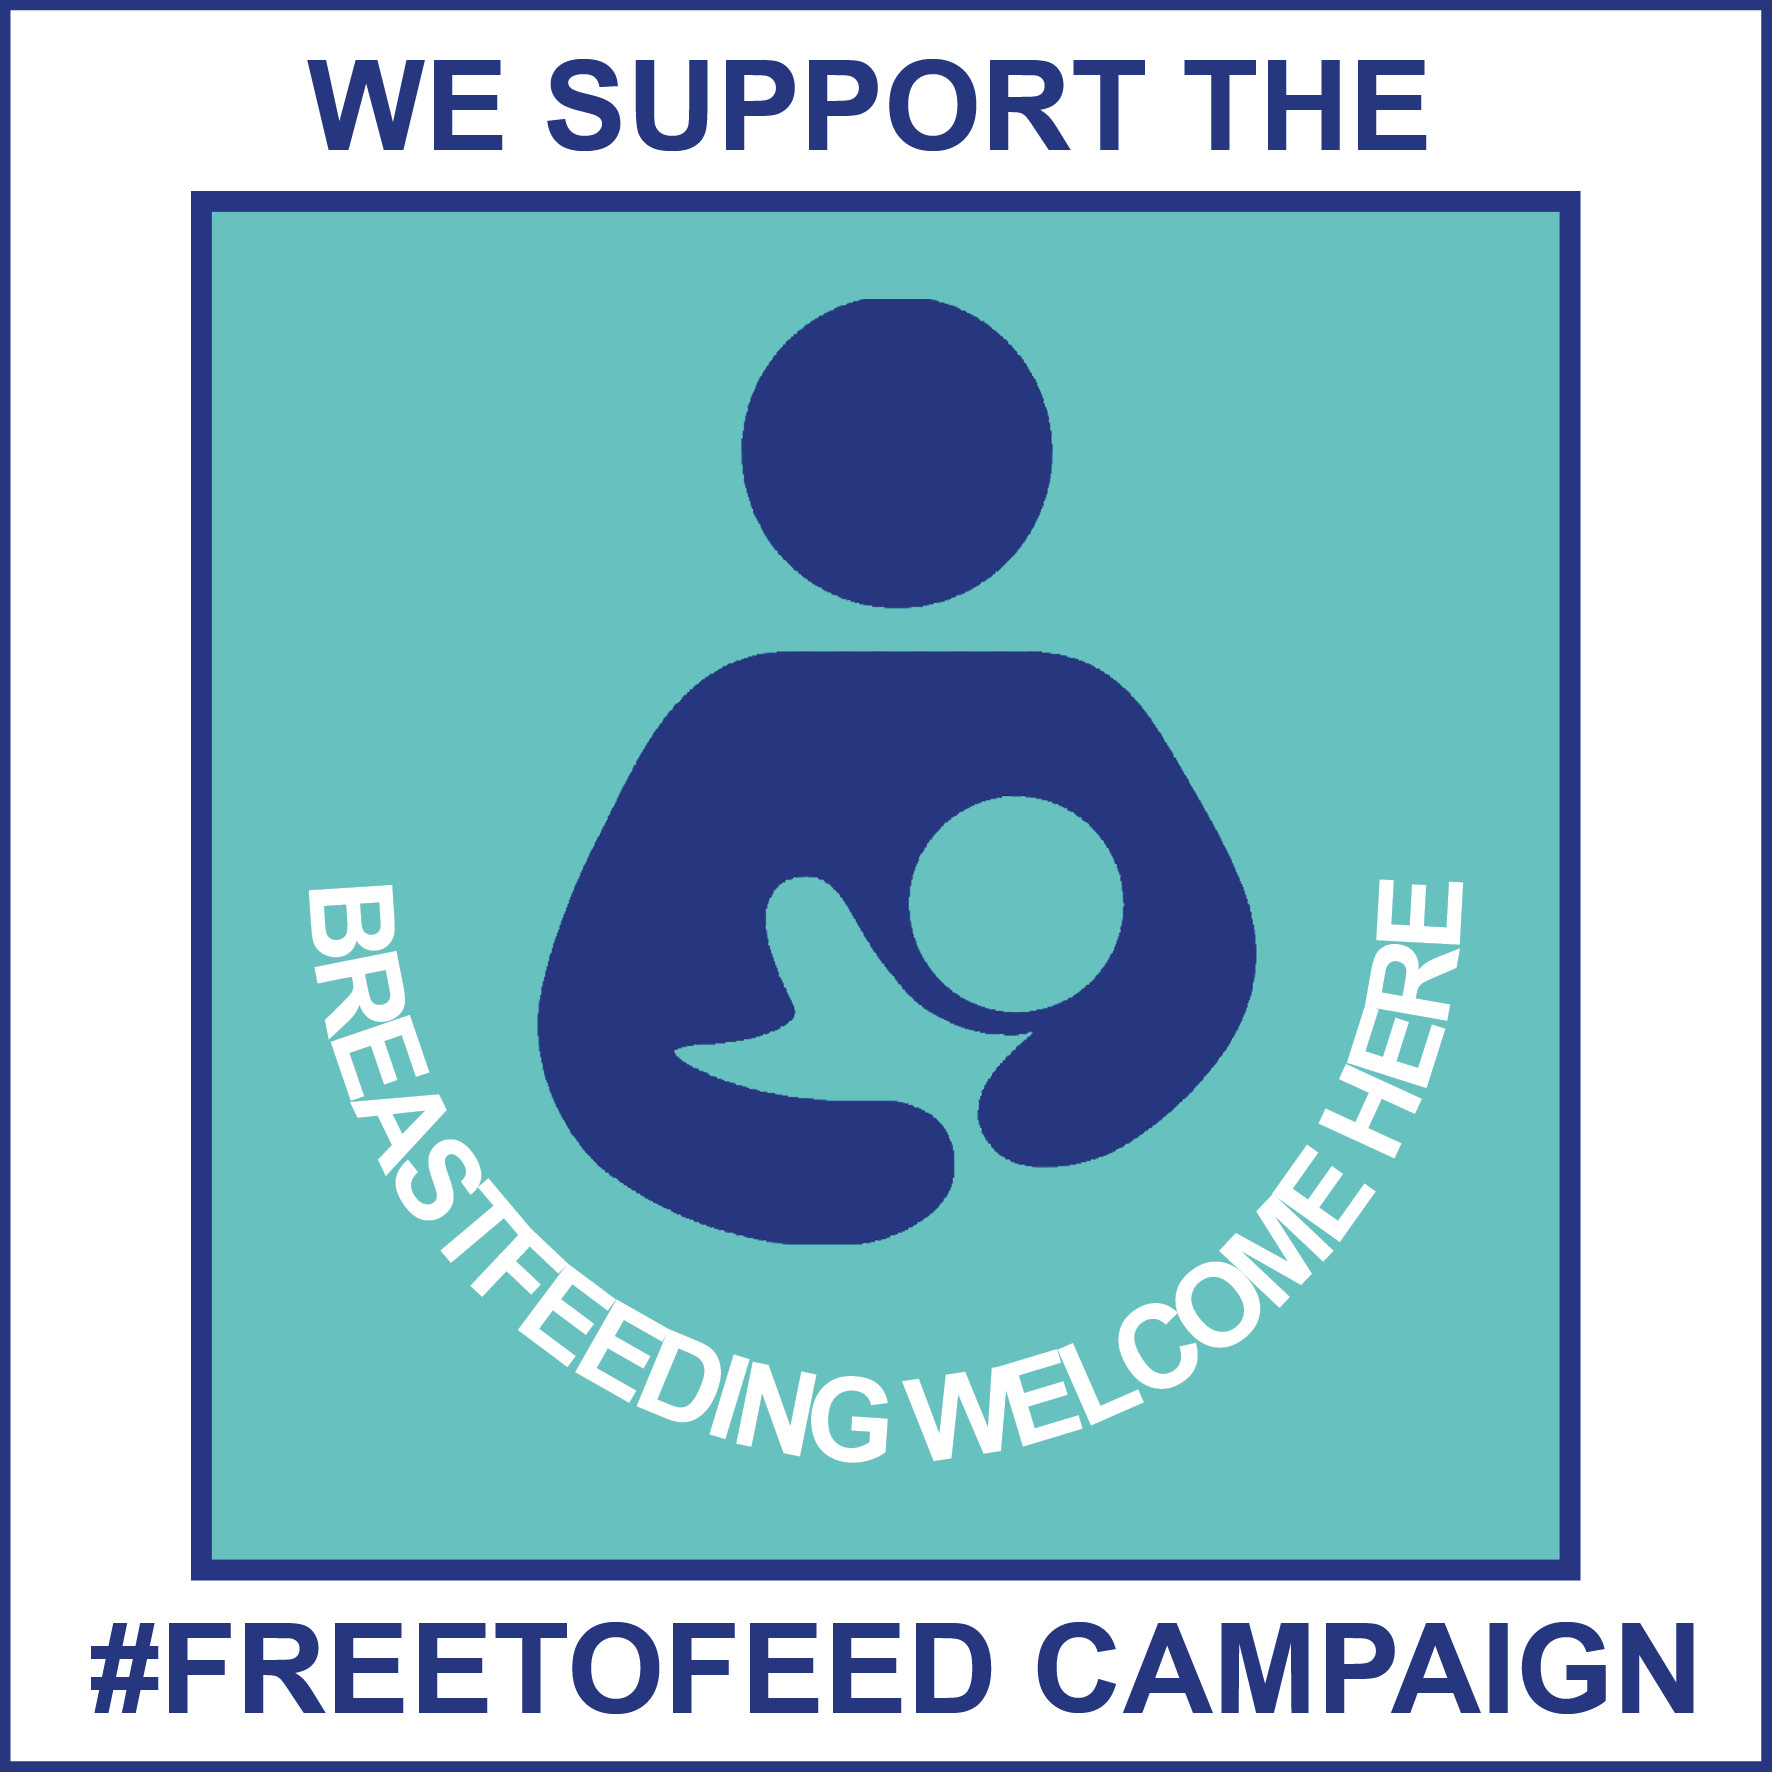 Free to Feed